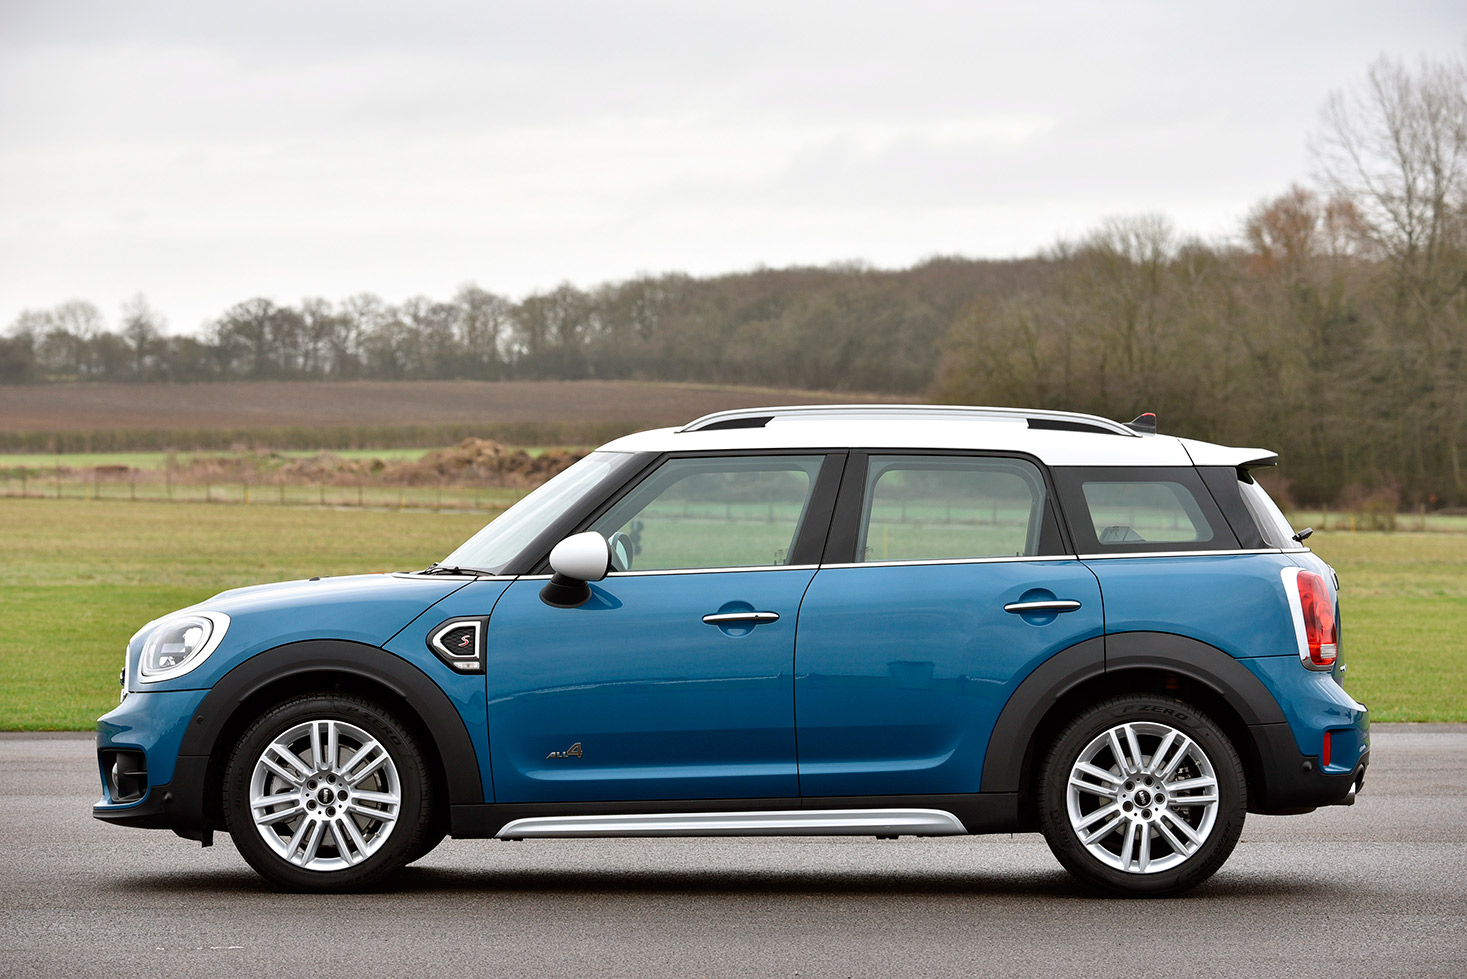 mini-countryman-308.jpg